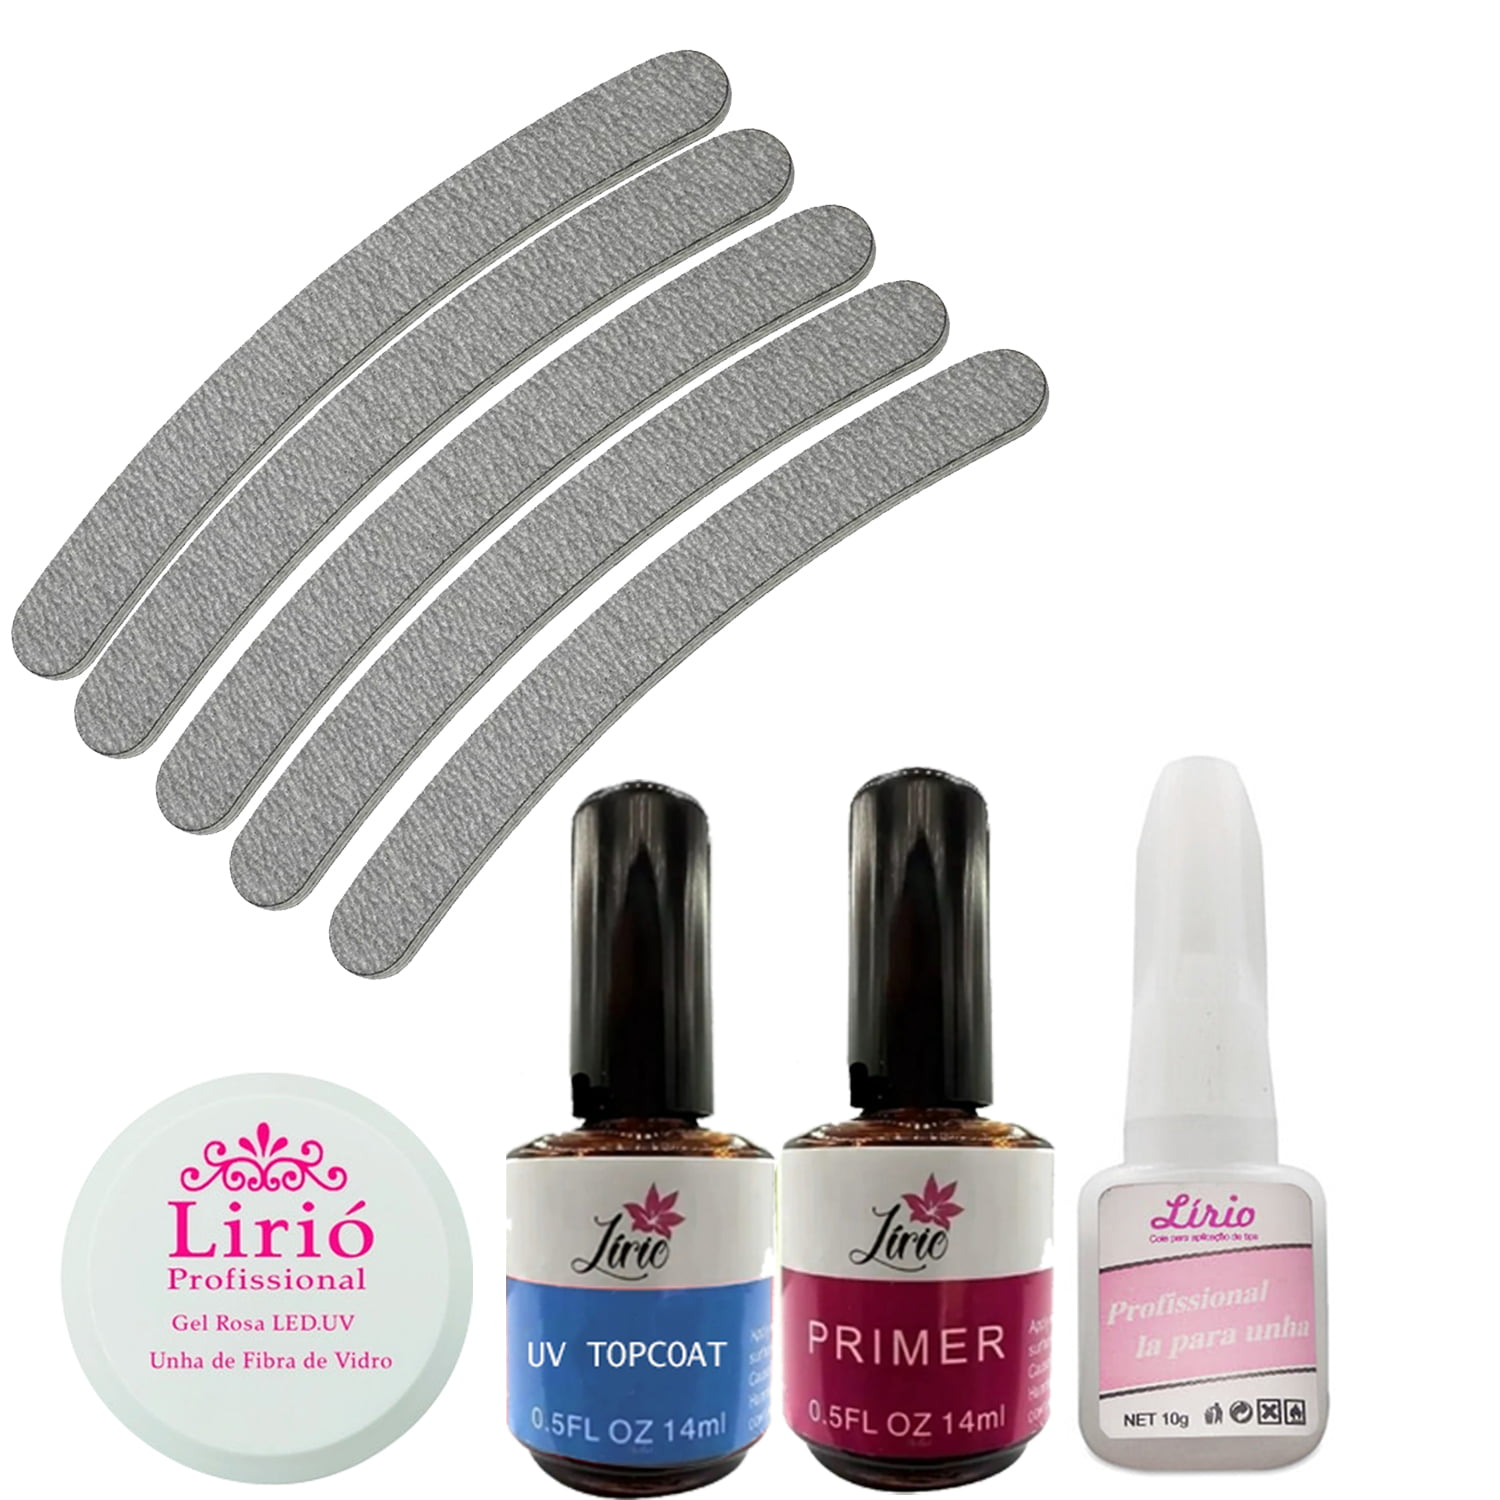 2 Gel 2 Top Coat 1 Primer 5 Lixas Banana 1 Cola Lirió